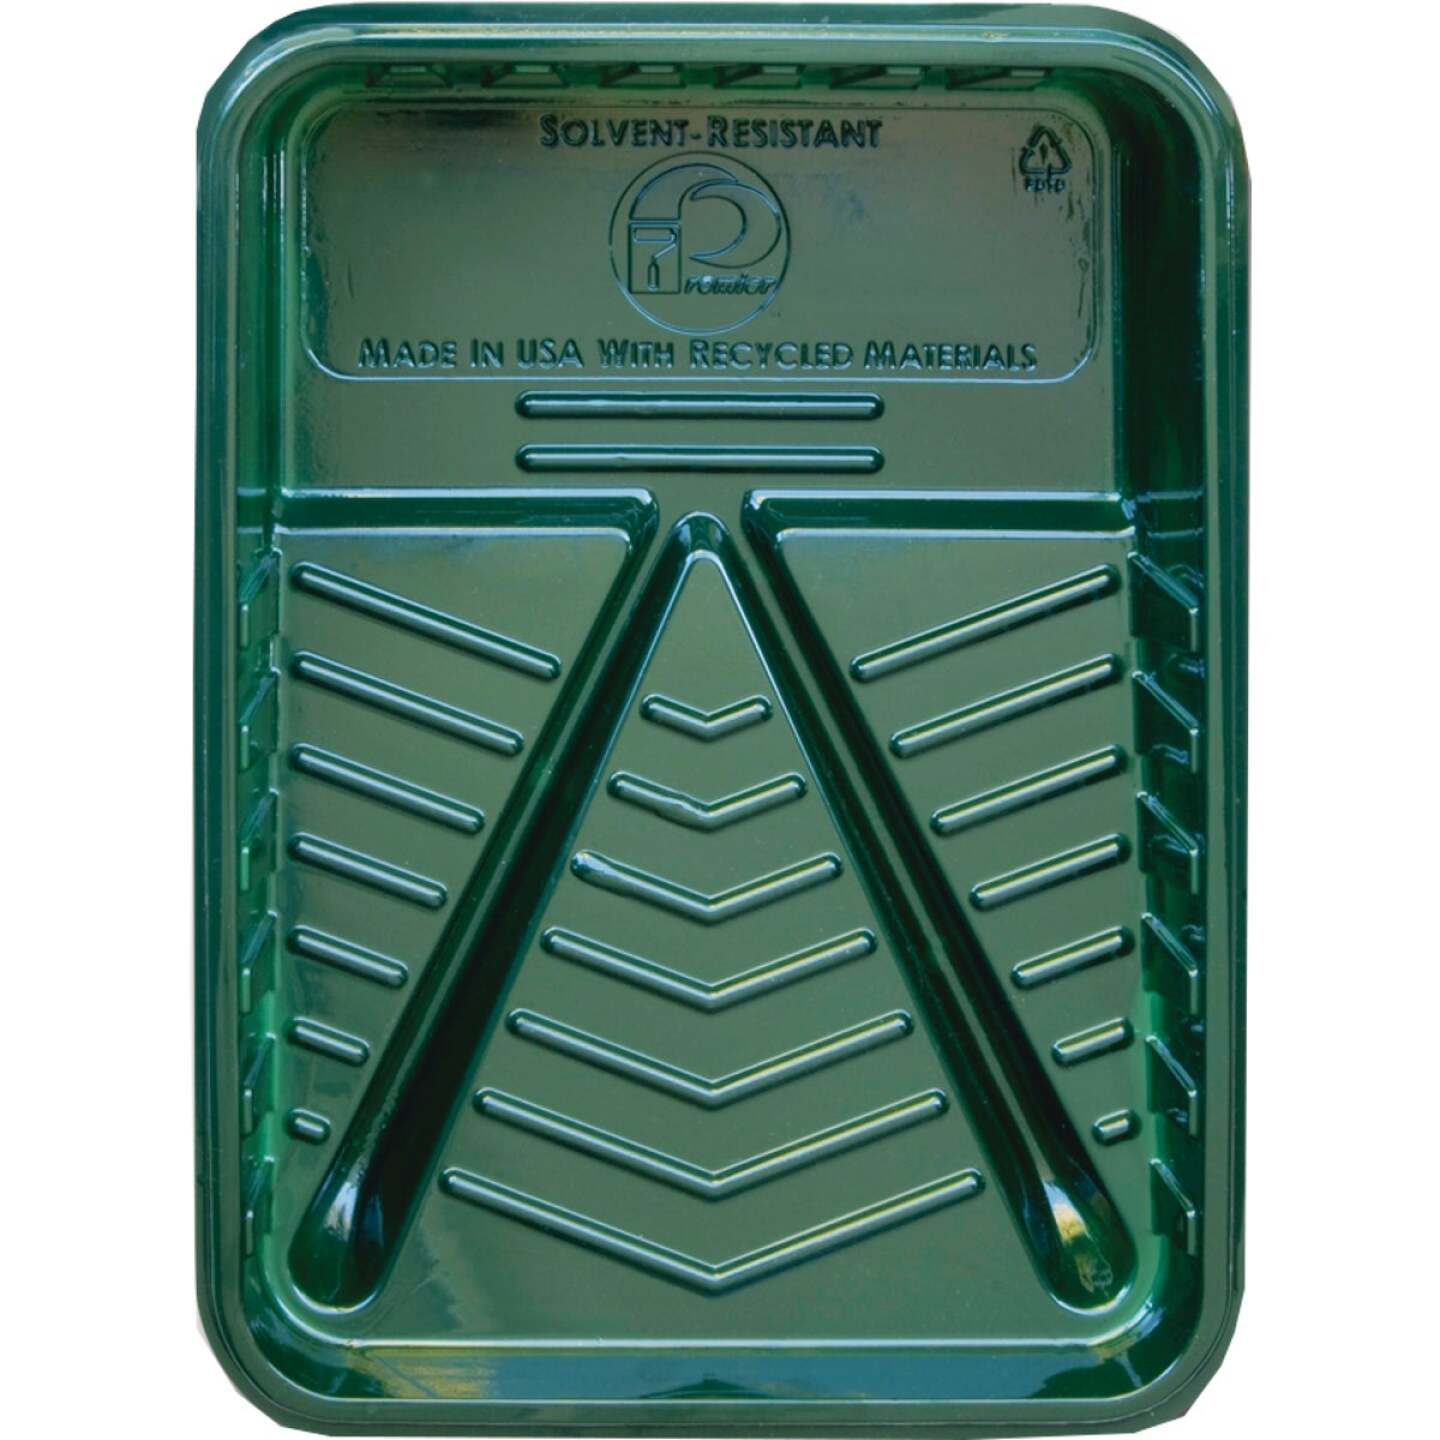 Premier Plastic Solvent-Resistant 9 In. Paint Tray Image 1